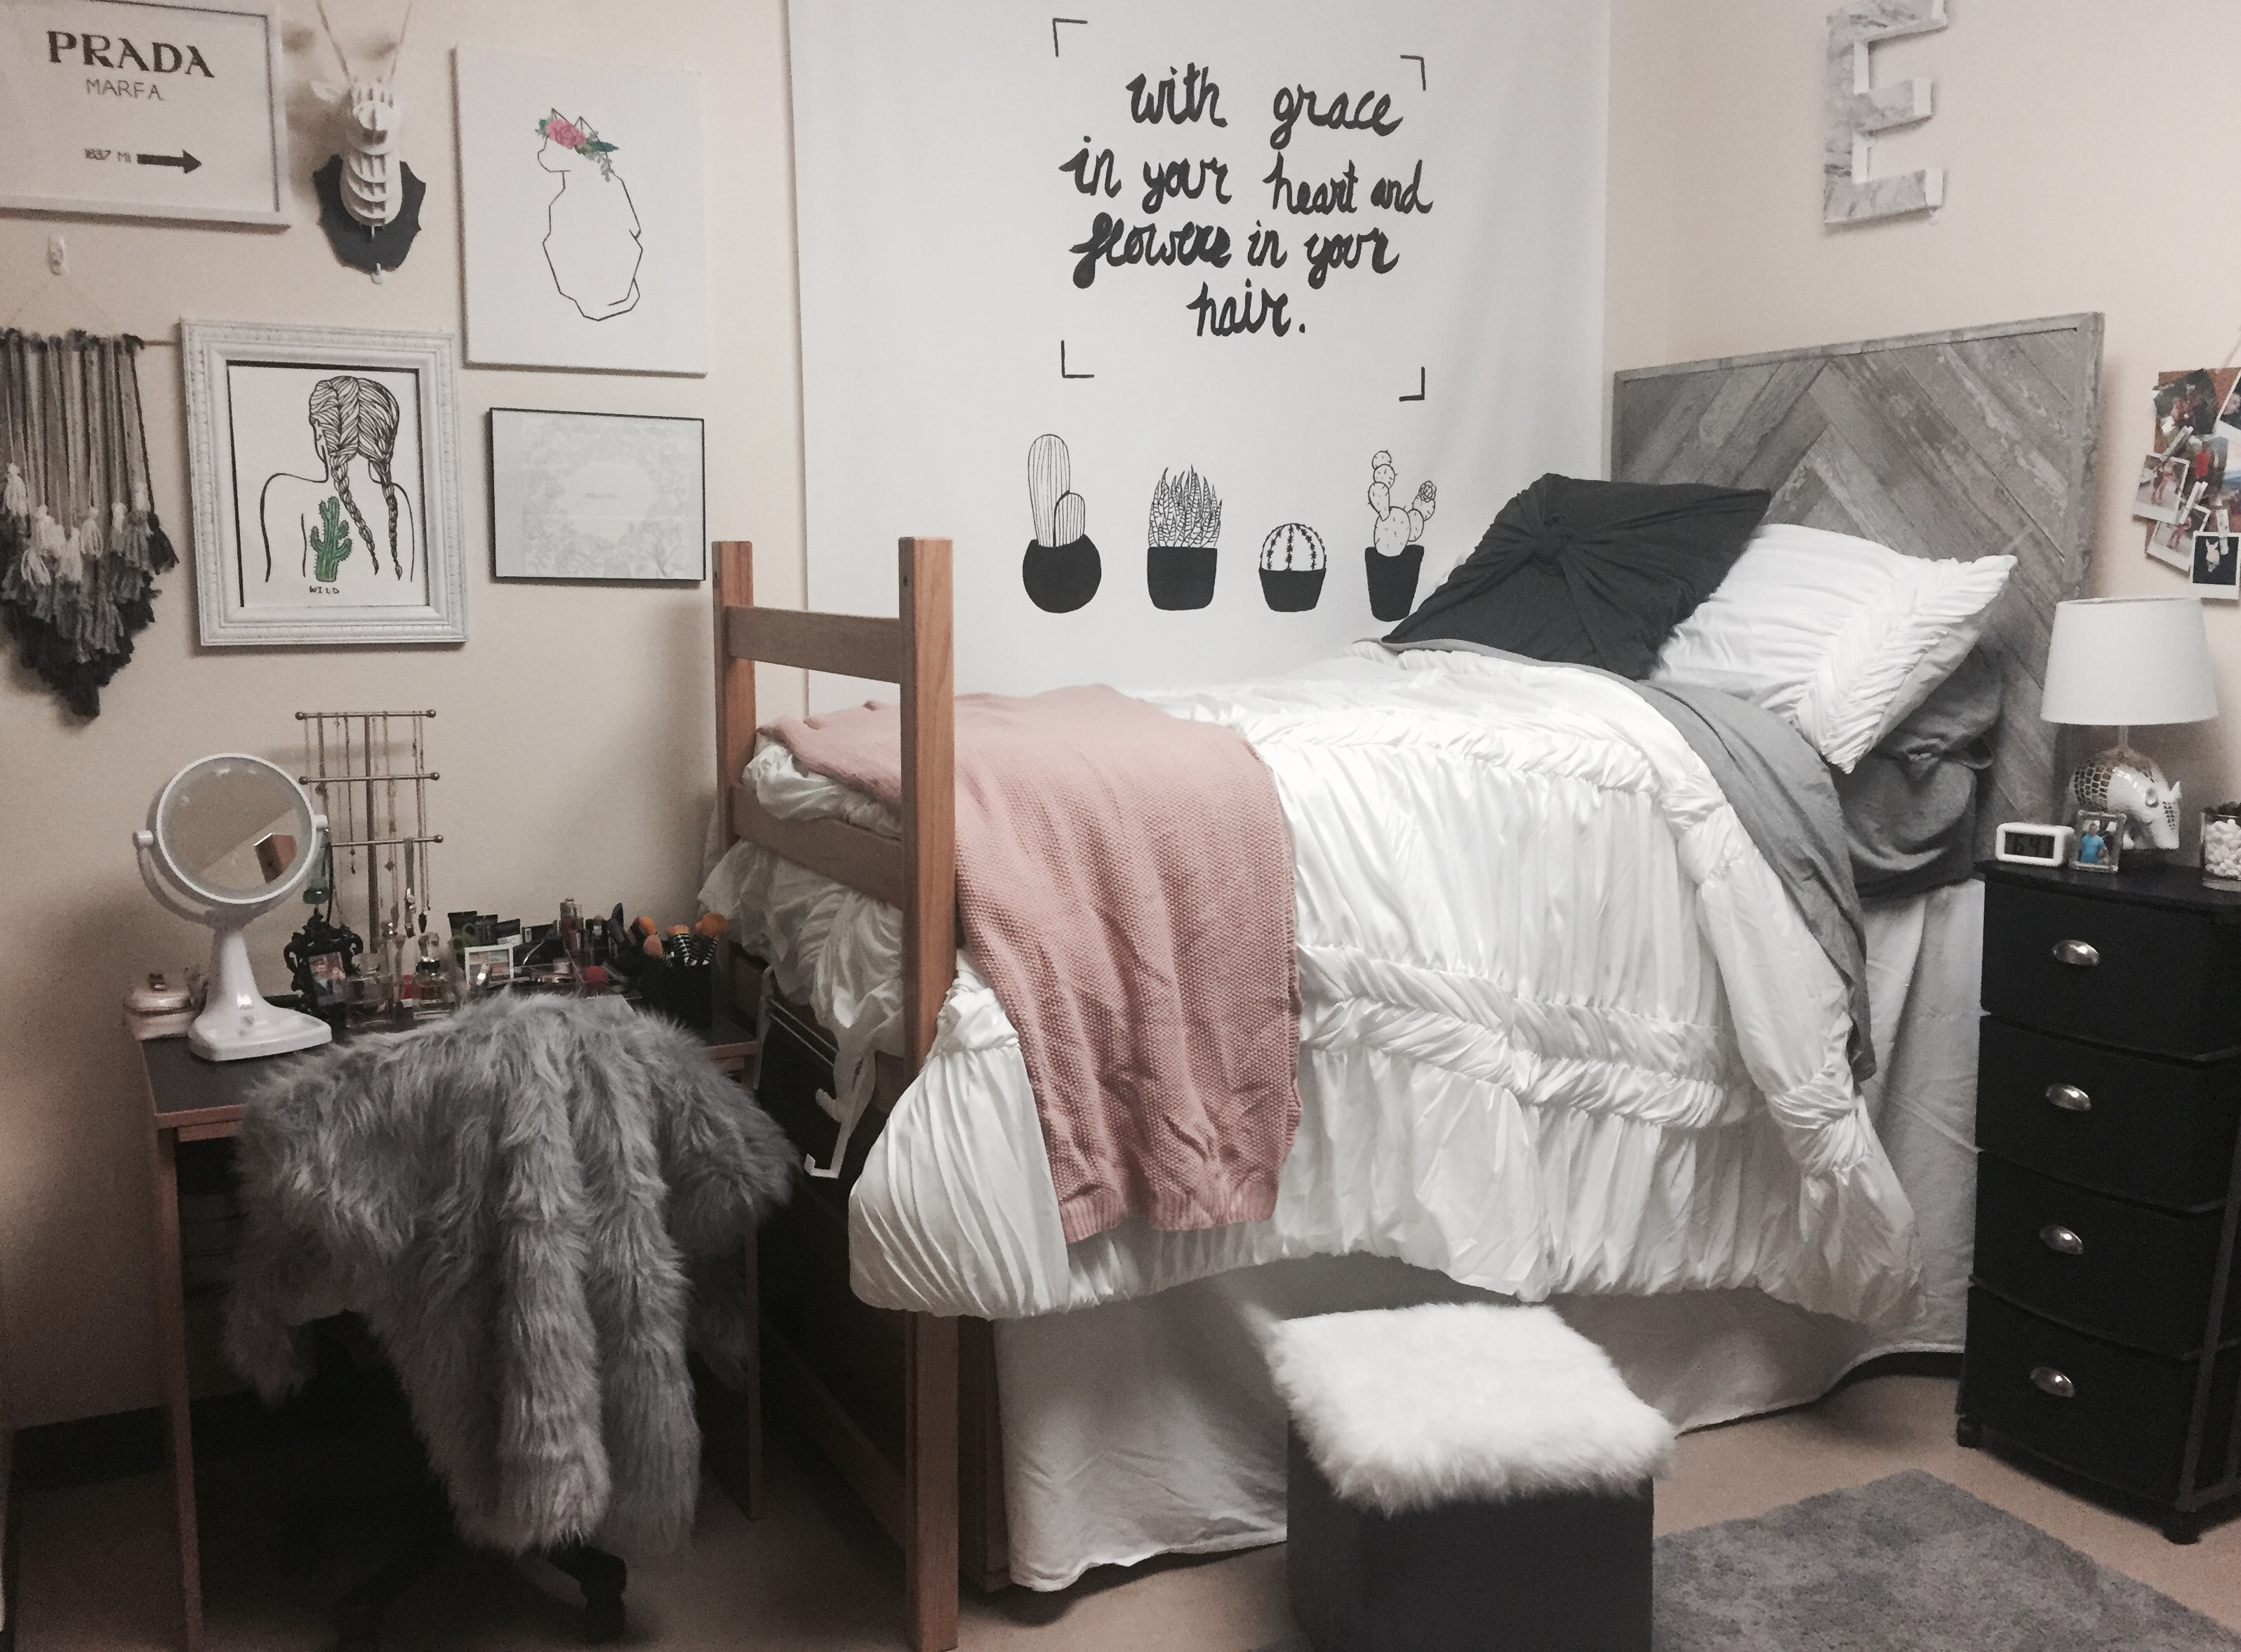 Creative dorm room ideas to make your space more cozy - Dorm room bedding ideas ...